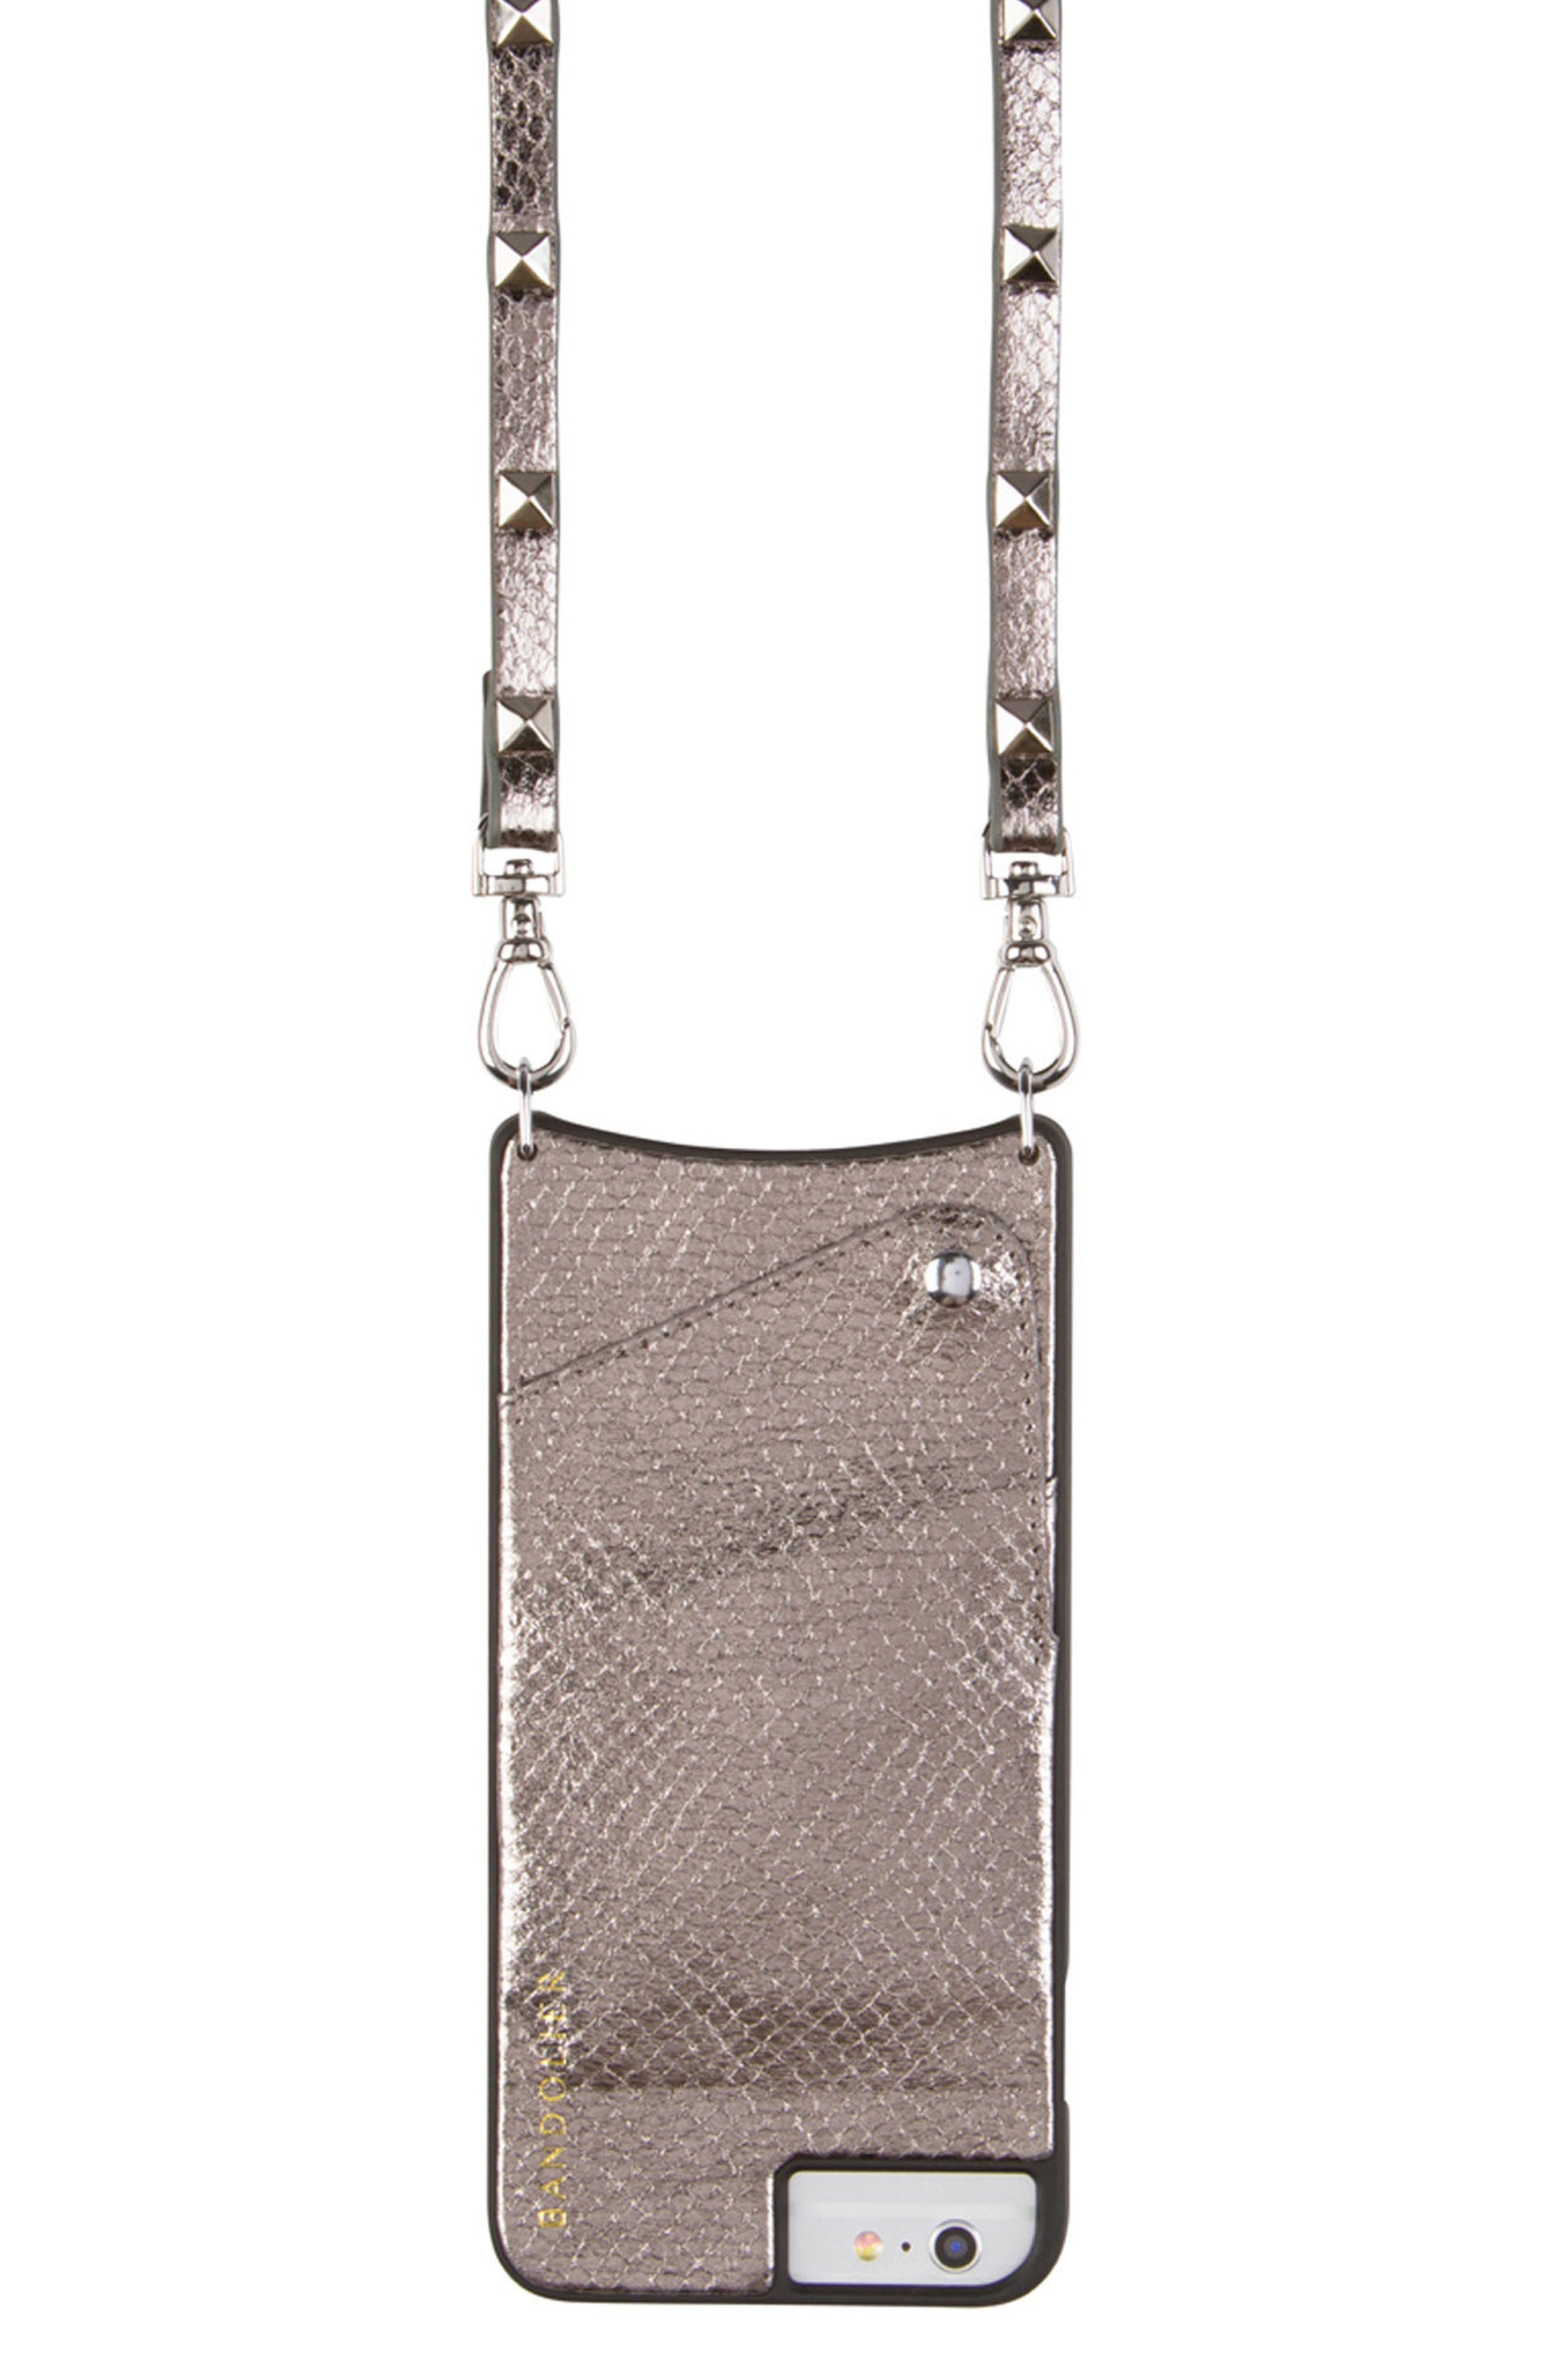 Sarah Metallic Faux Snakeskin iPhone 6/7/8 & 6/7/8 Plus Crossbody Case,                             Main thumbnail 1, color,                             Pewter/ Silver